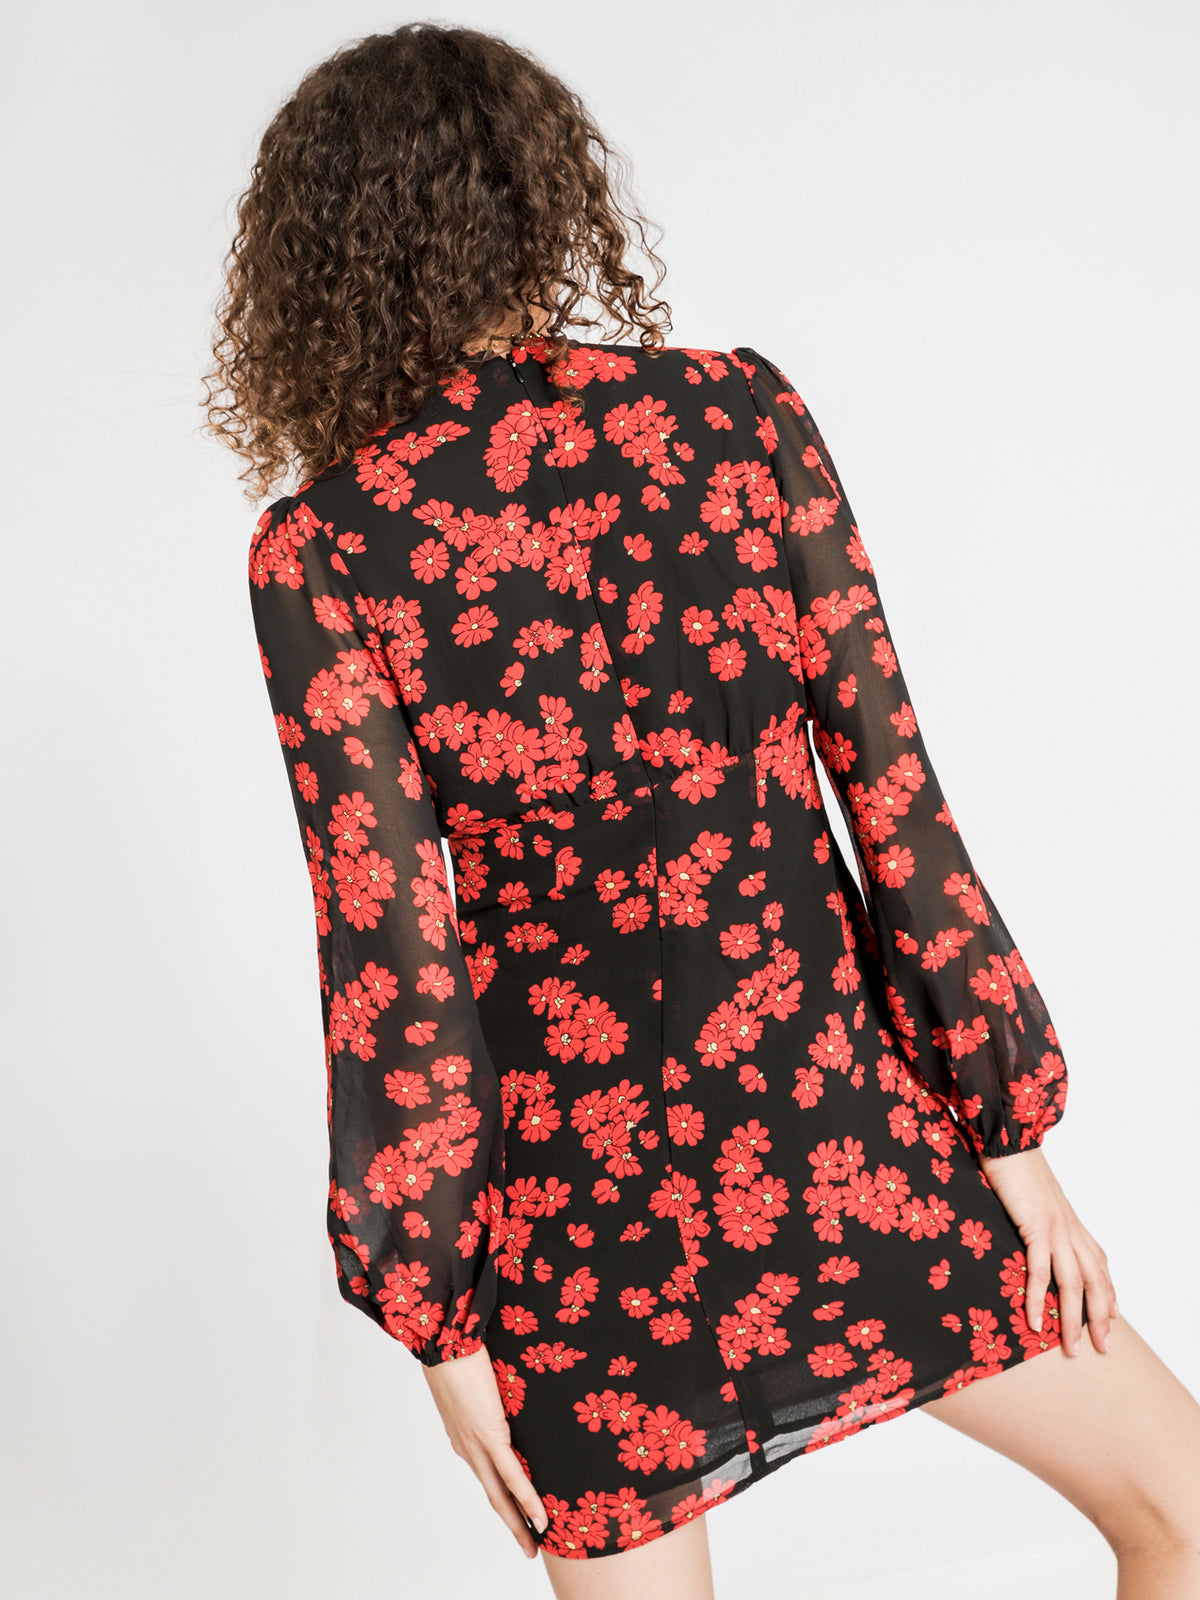 Evelyn Dress in Red & Black Floral